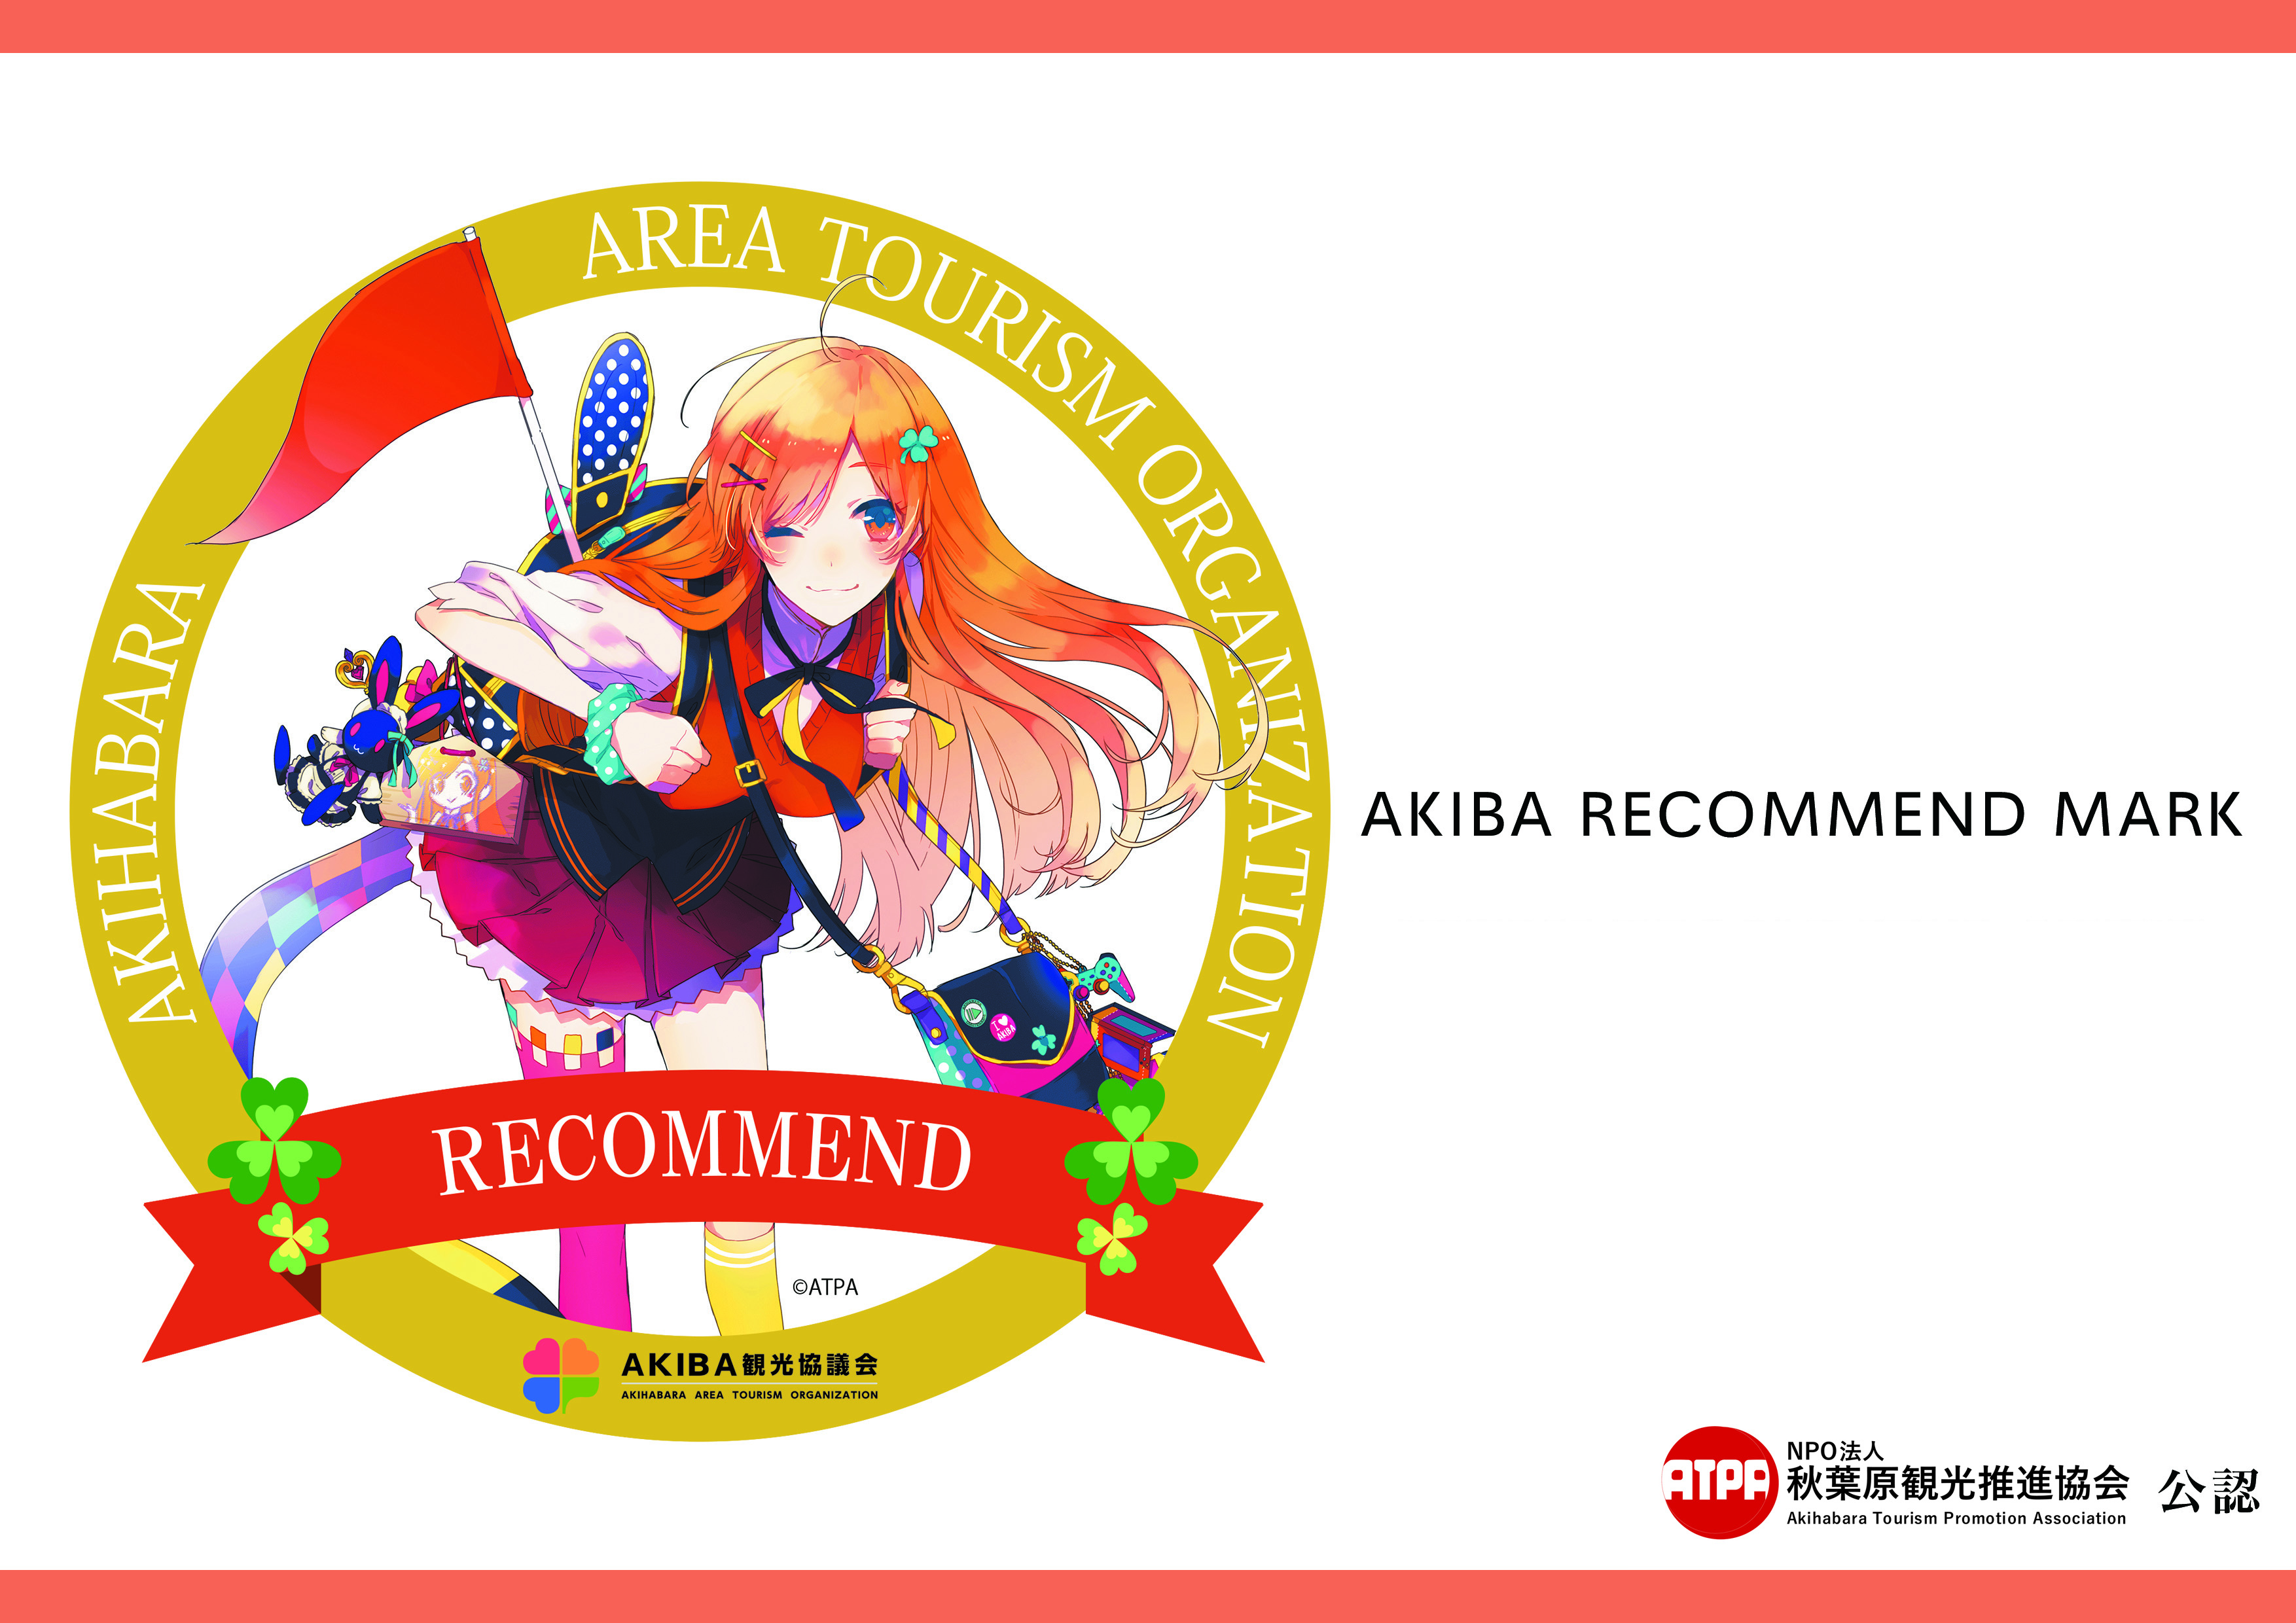 Introduction of a New Standard for Certifying Shops/Services in Akihabara: AKIBA RECOMMEND MARK